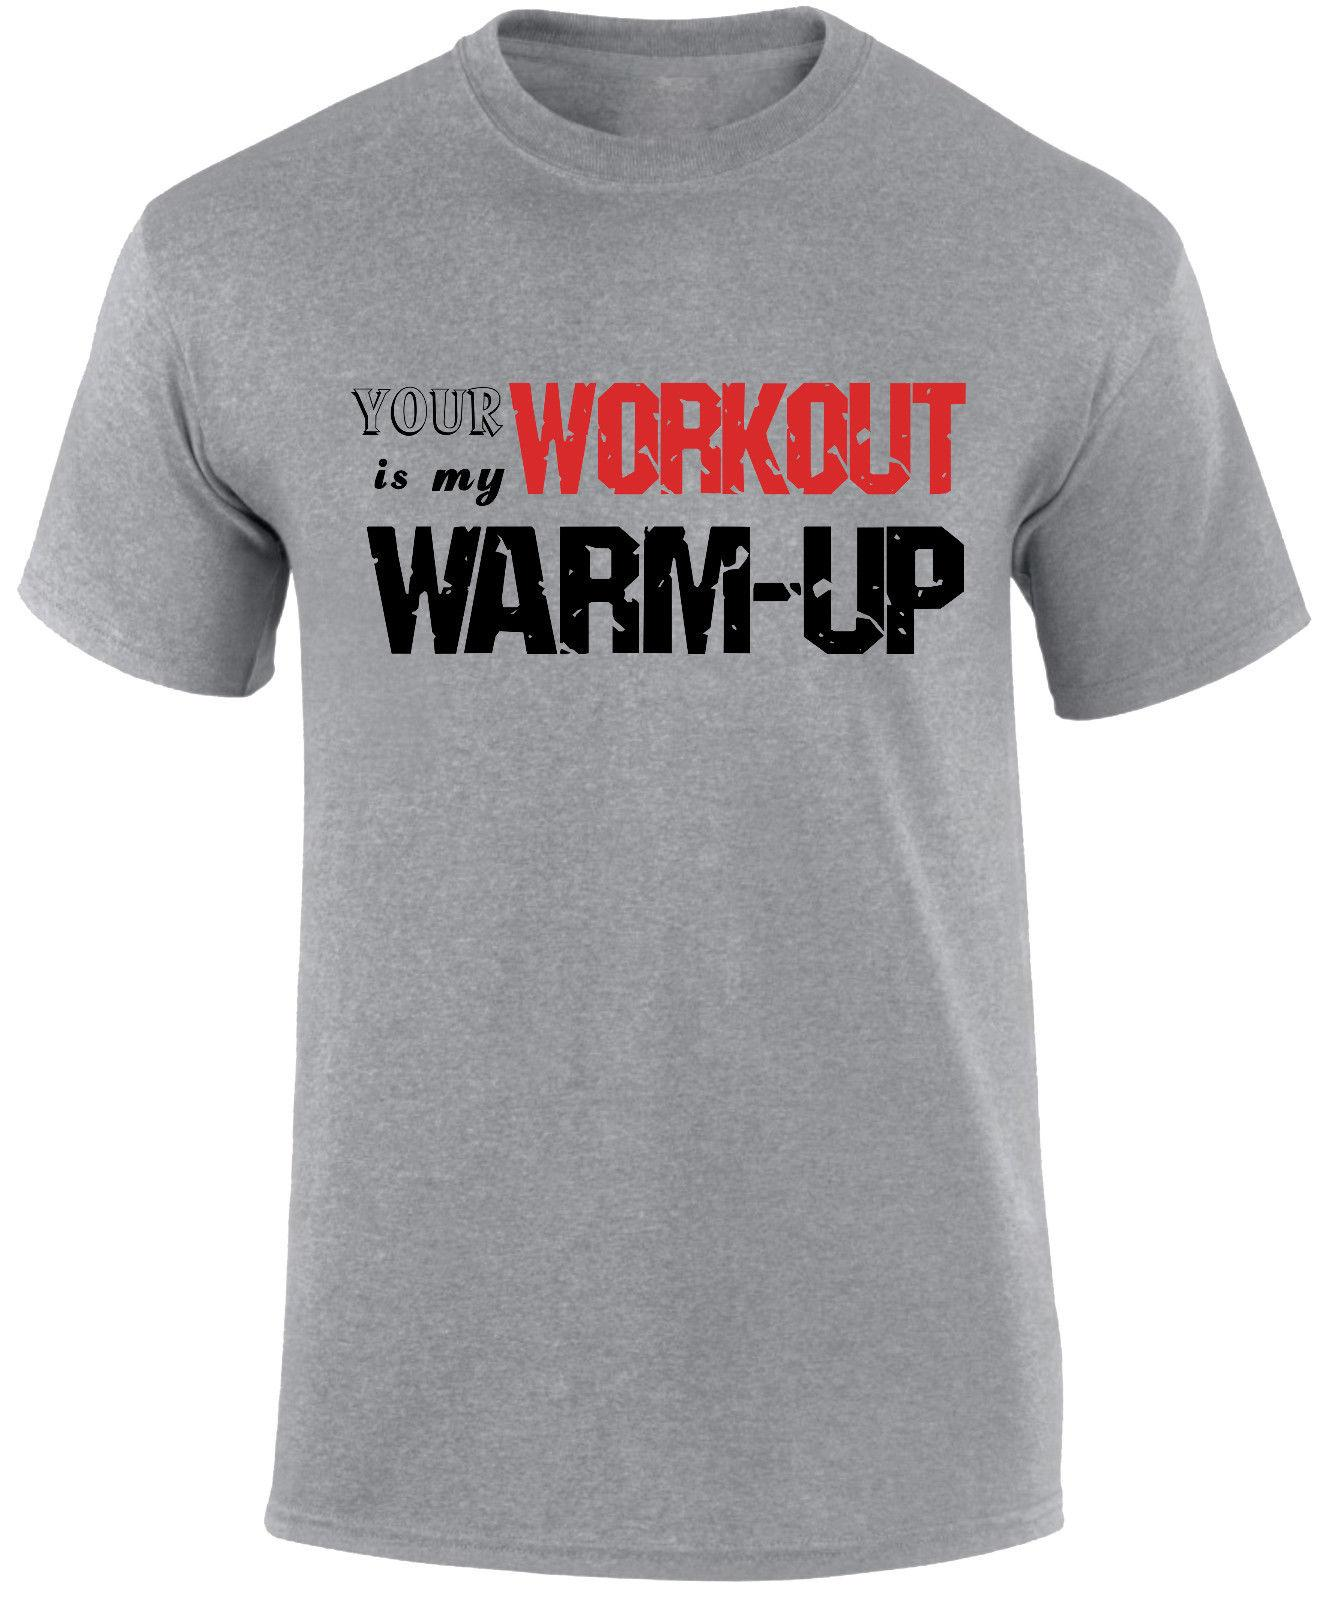 19535bbde3 Your Workout Is My Warm Up Gym Fitness Sports Crossfit Funny Slogan Men T  Shirt Funky Tee Shirts Humor T Shirt From Goodclothes79, $11.48| DHgate.Com